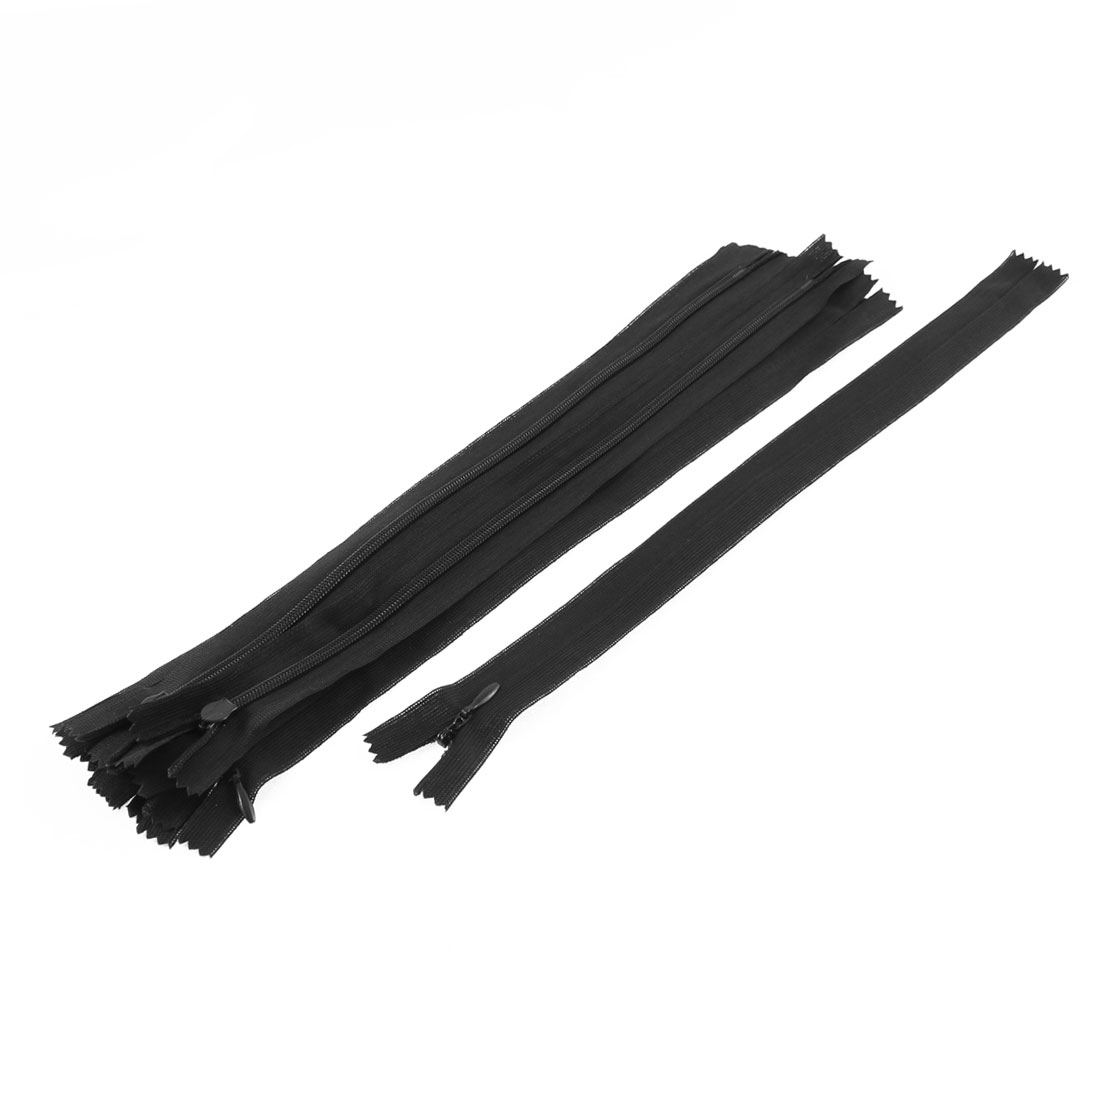 10 Pcs Black 30cm Length Nylon Zippers Zips for Clothes